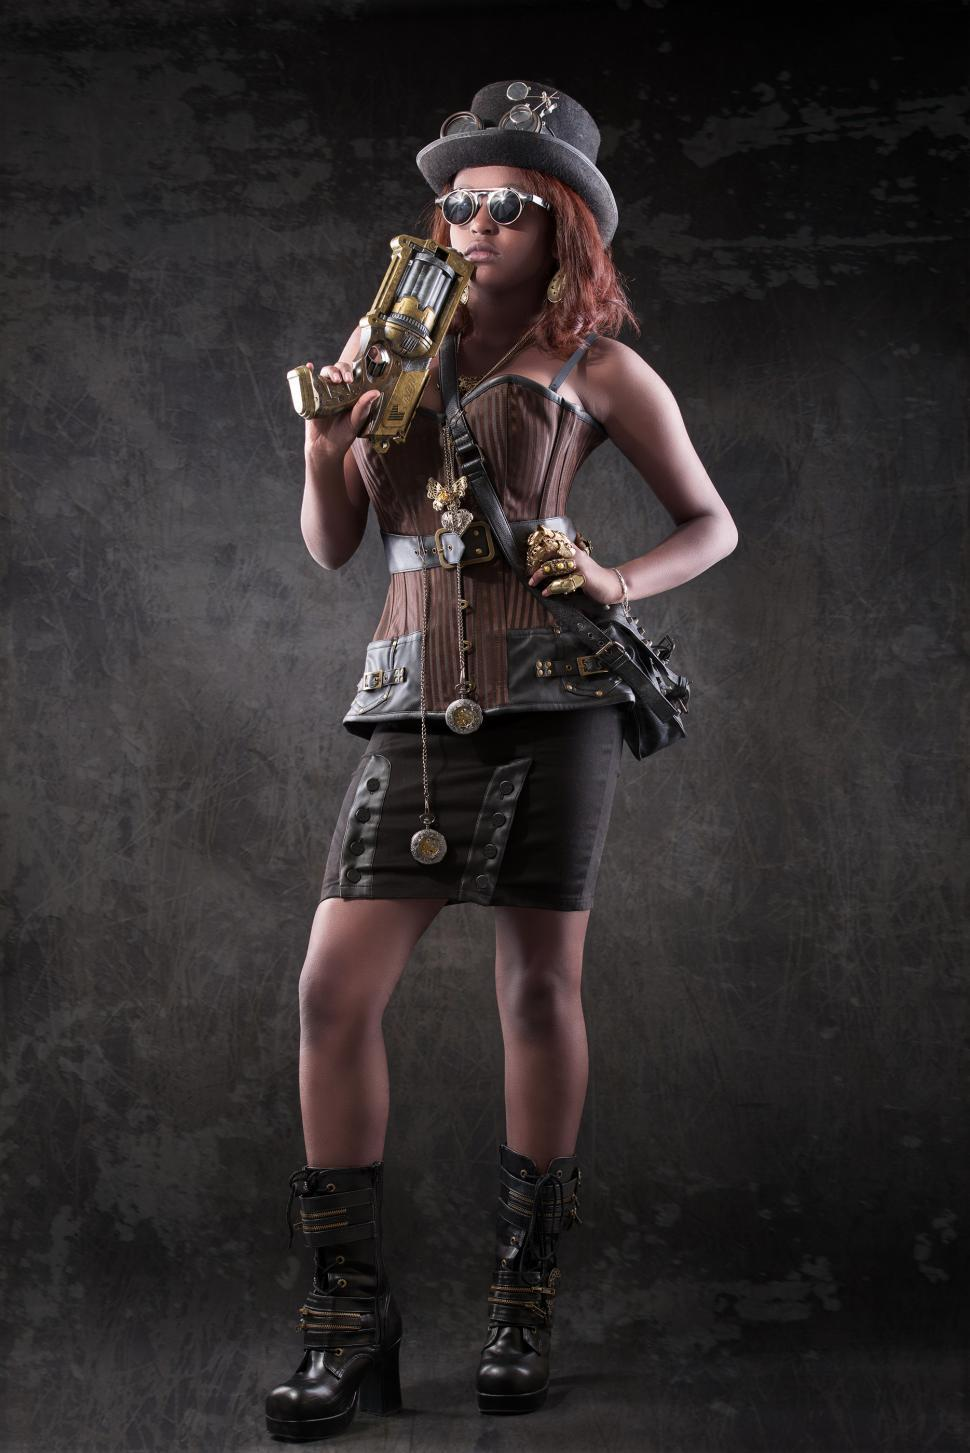 Download Free Stock HD Photo of Steampunk woman standing Online